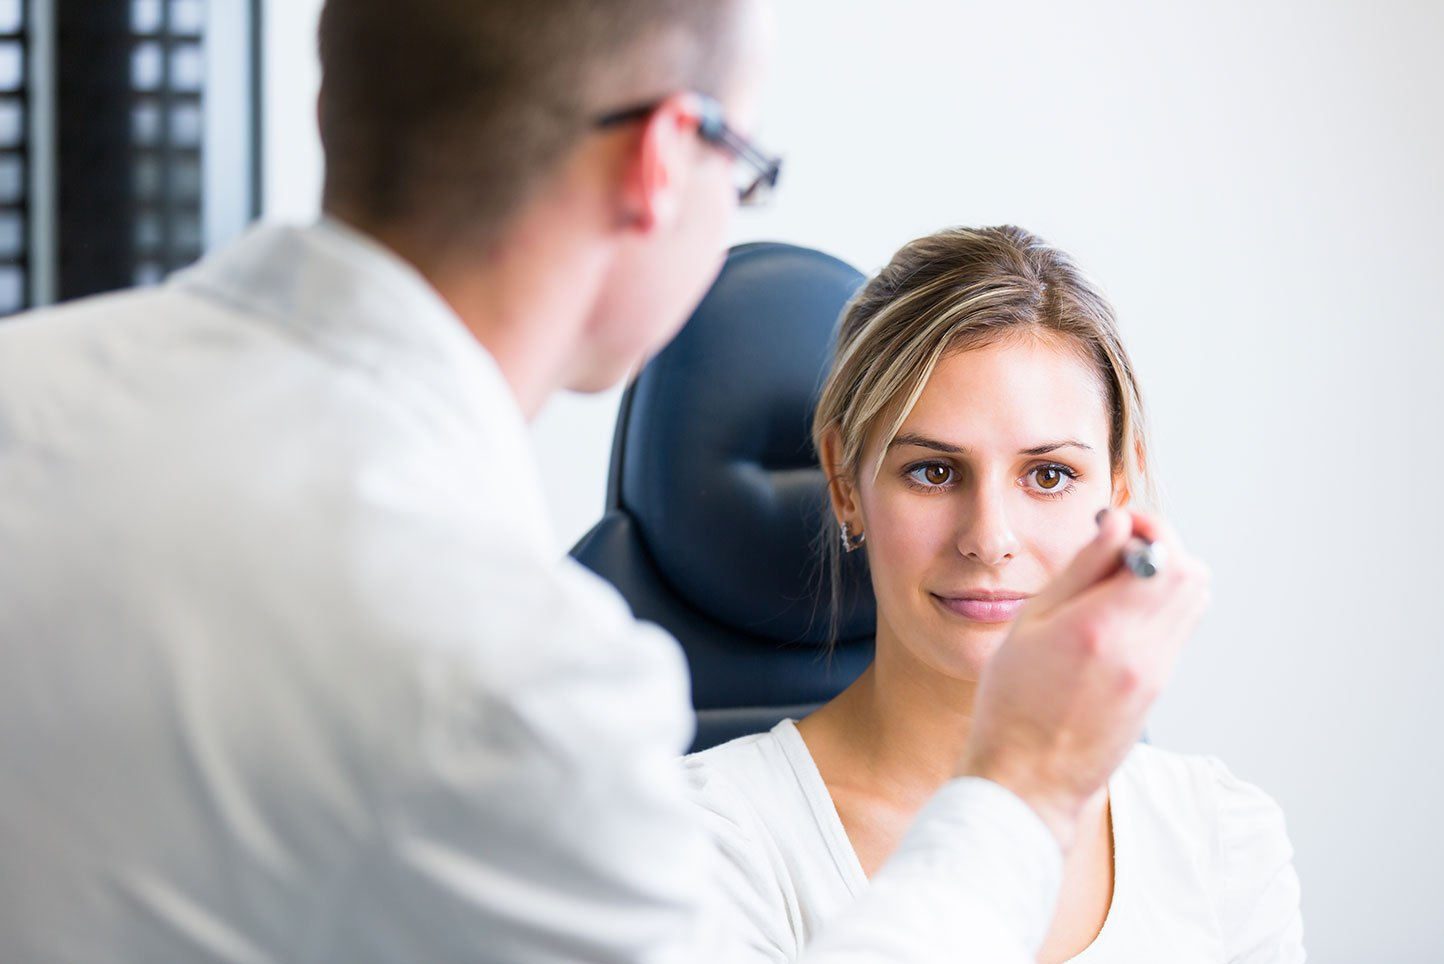 Young woman having her eyes examined by an eye doctor